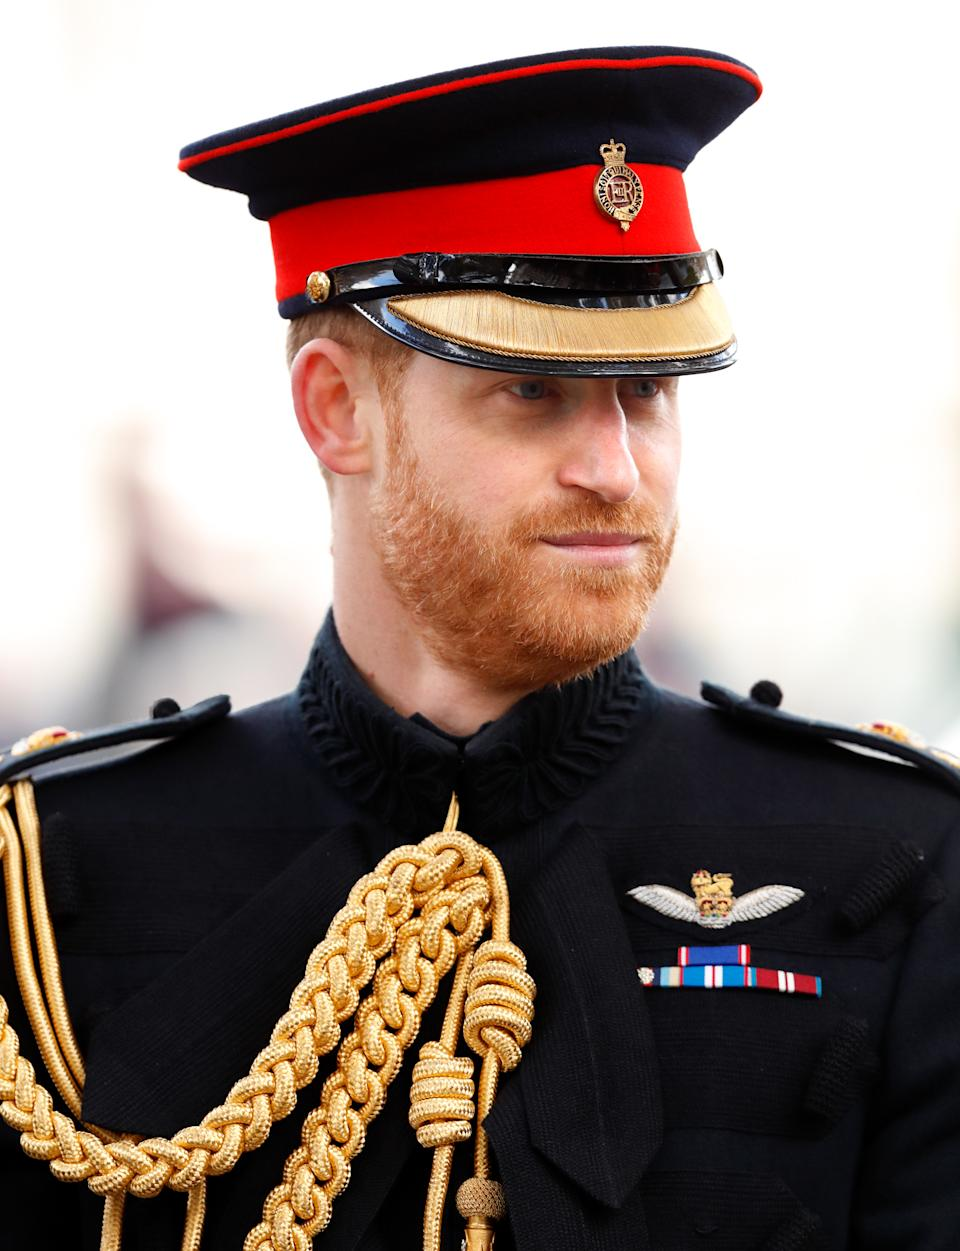 Prince Harry attends the 91st Field of Remembrance at Westminster Abbey on November 7, 2019 in London